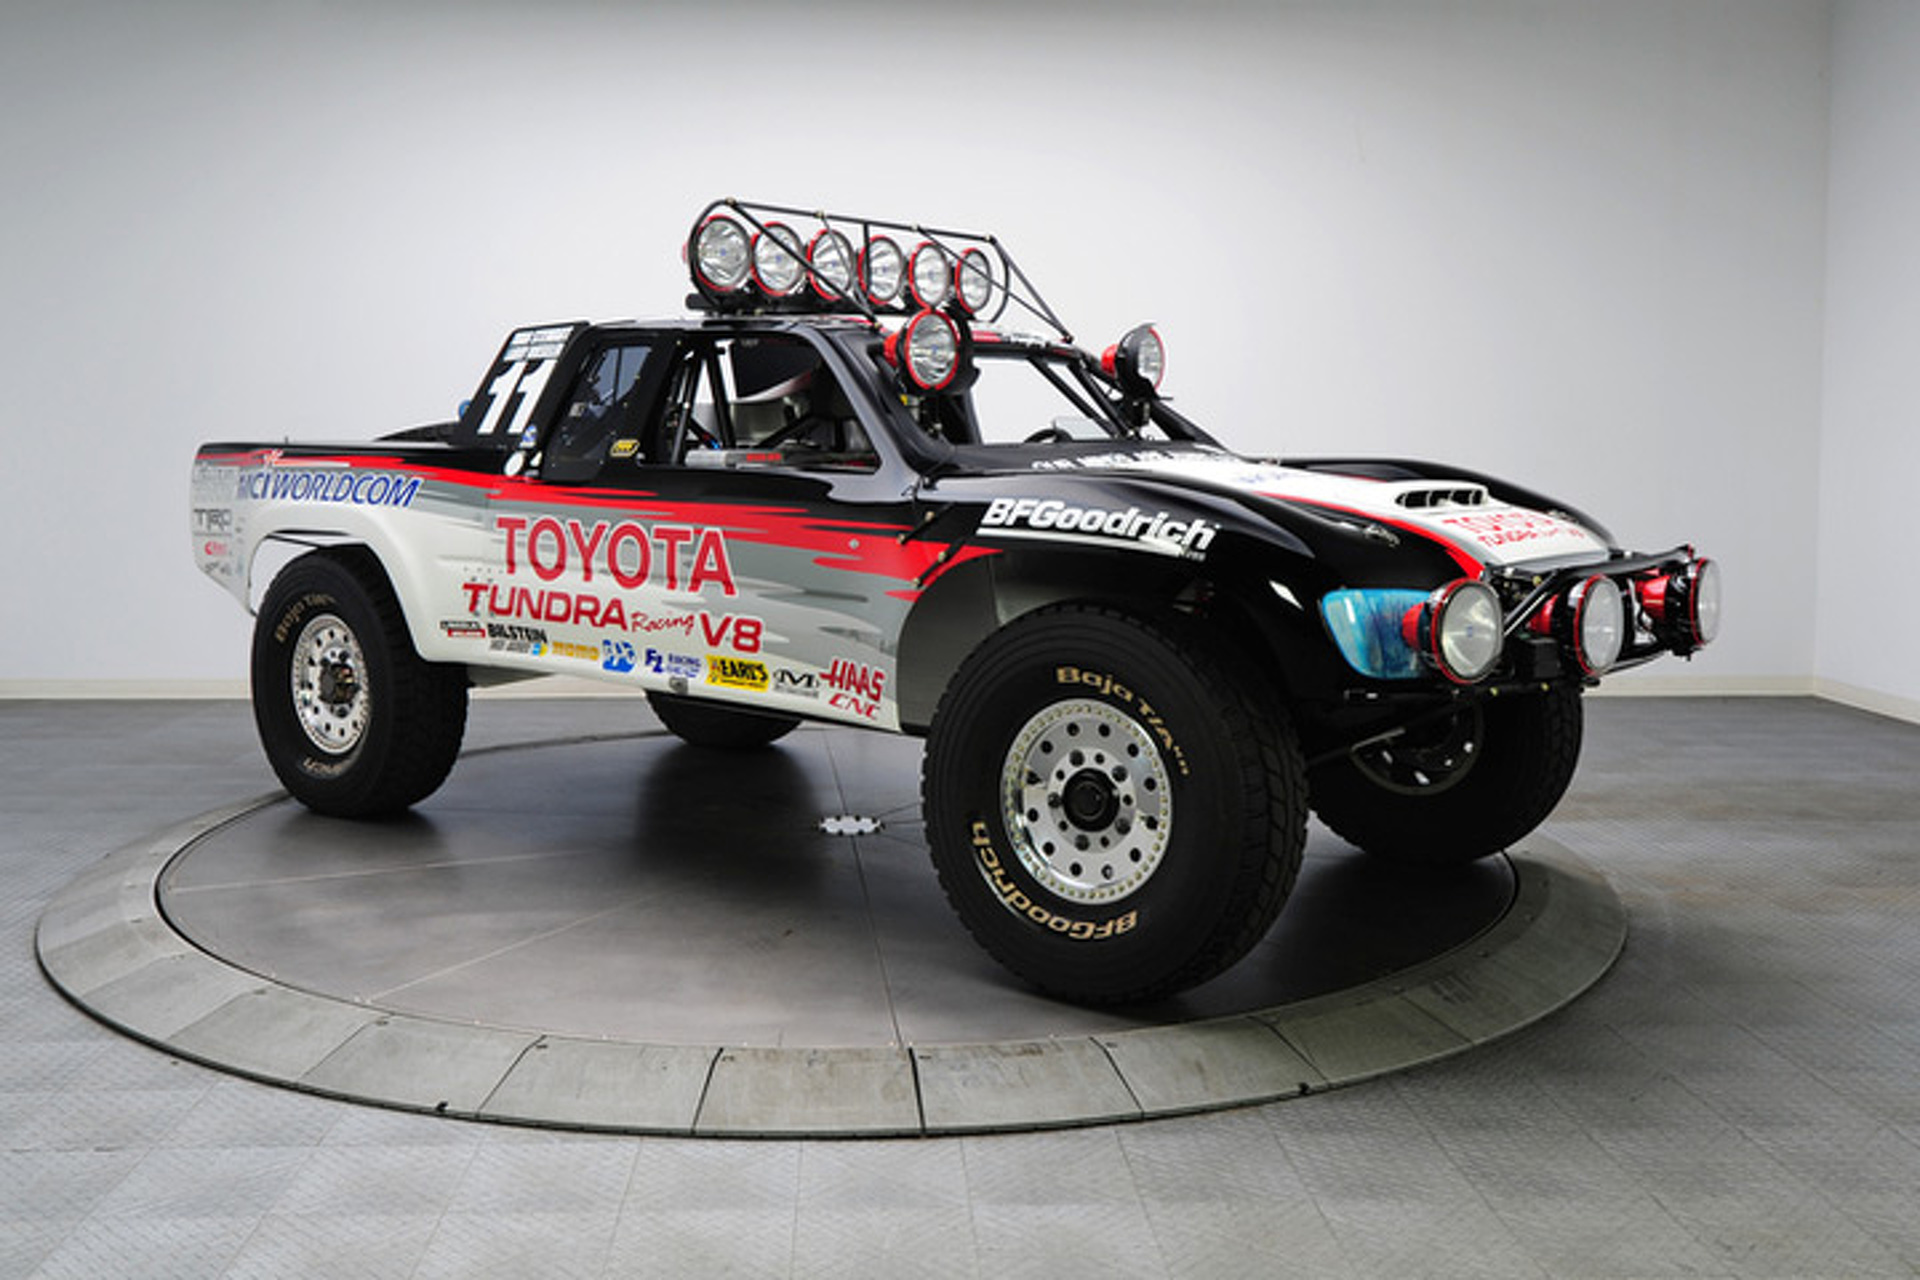 Ivan Ironman Stewart S Baja 1000 Truck Can Be Yours